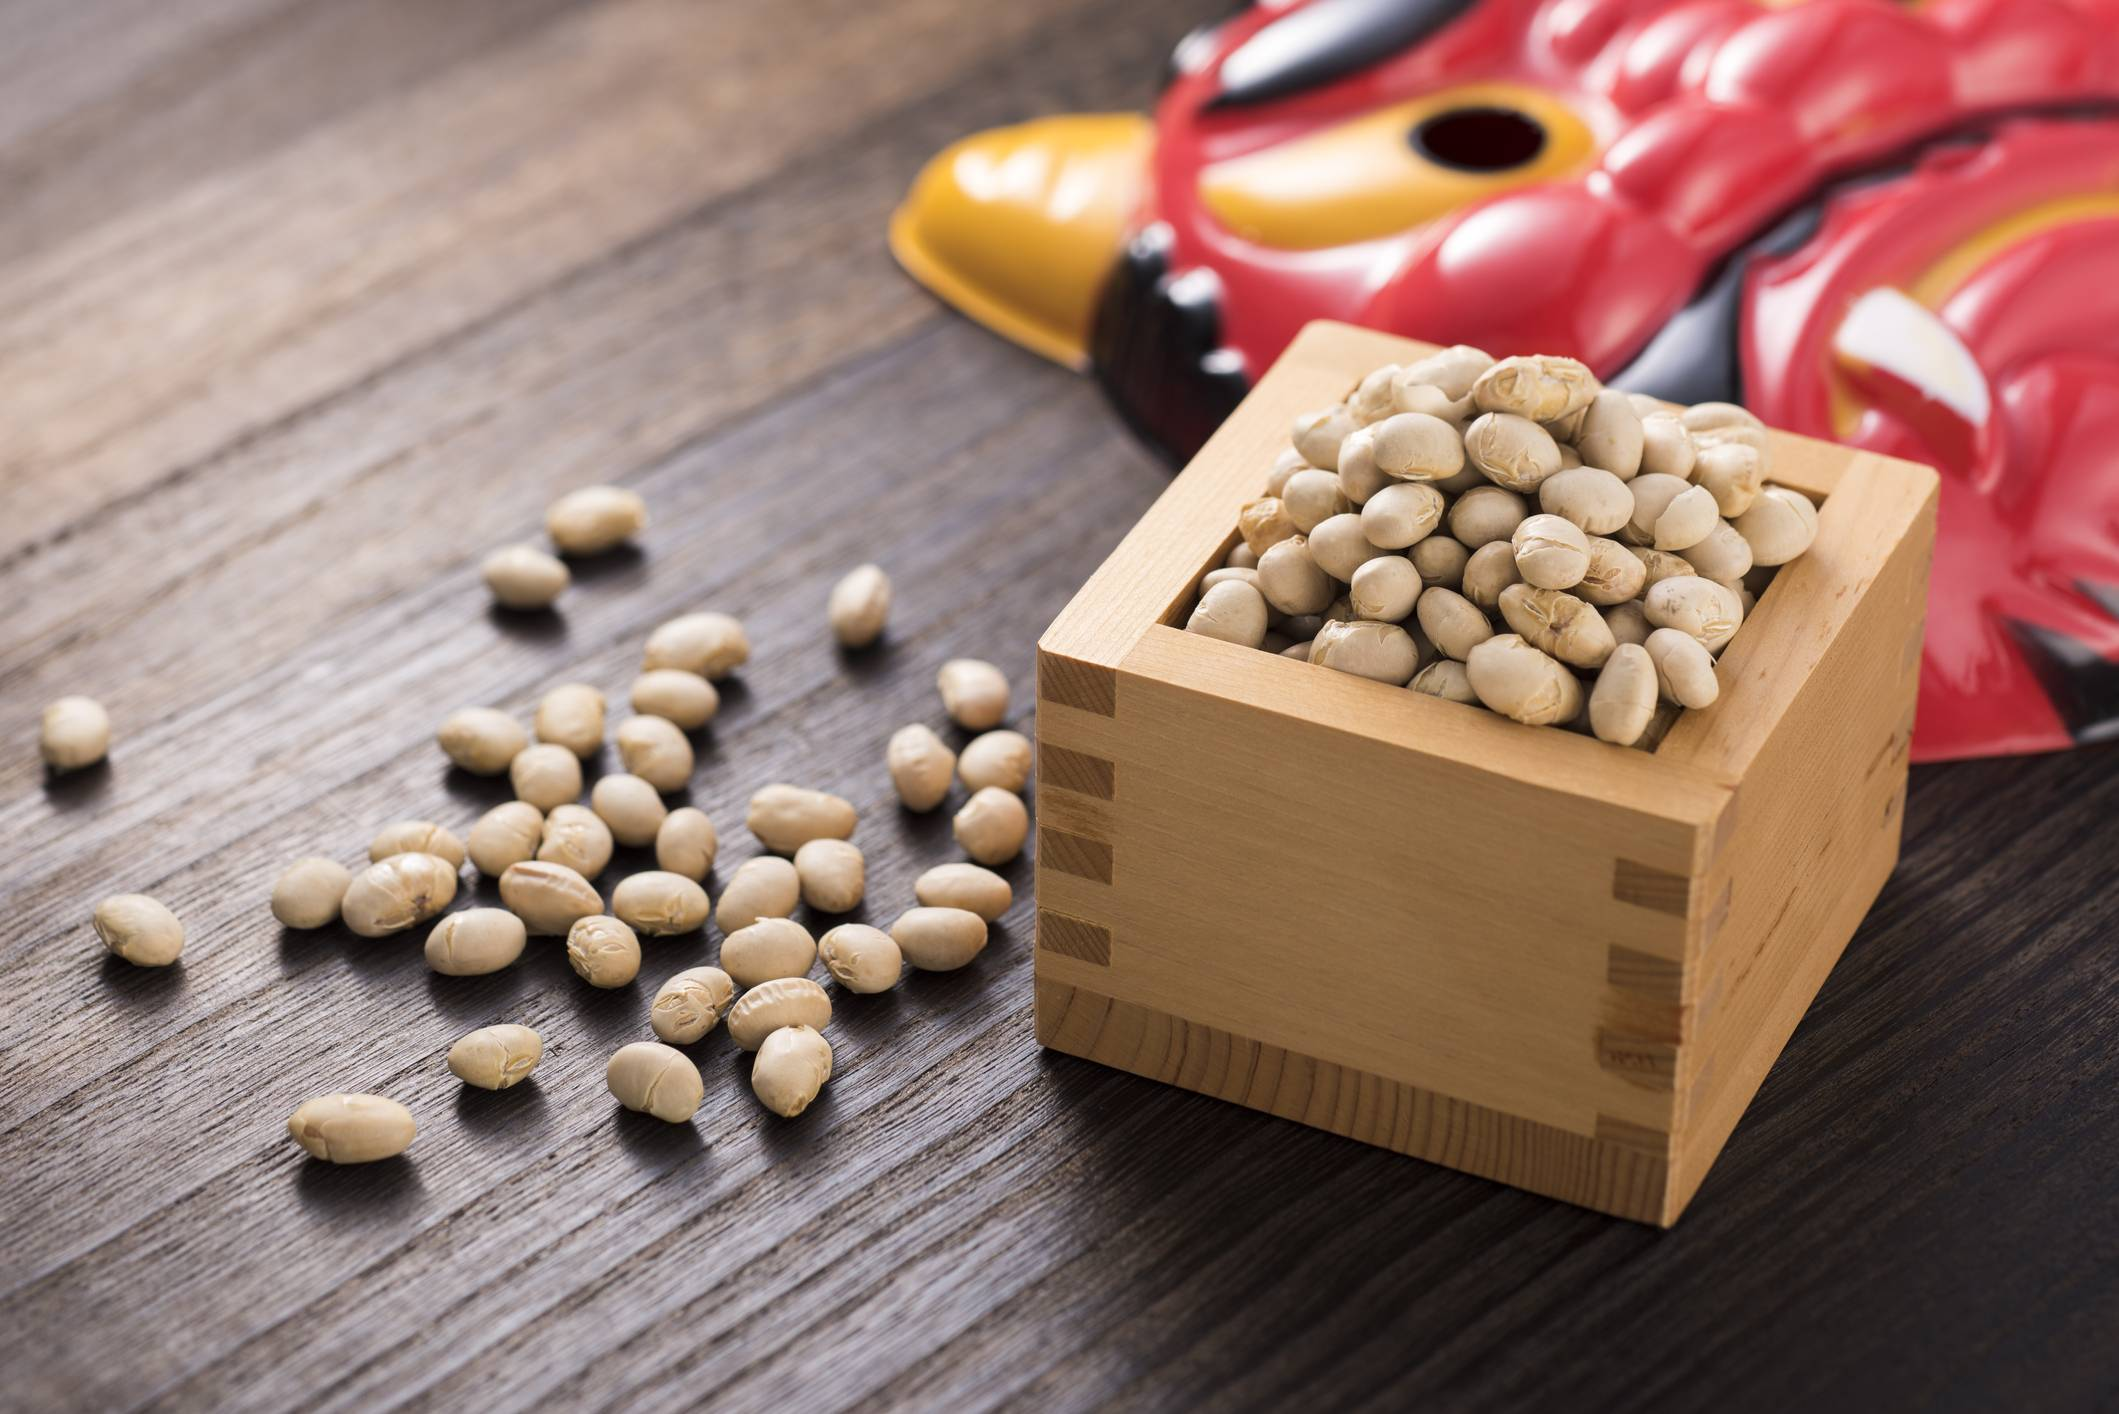 Get out: Beans are used to throw at people dressed as ogres on the holiday of Setsubun, which is on Feb. 2 this year. | GETTY IMAGES